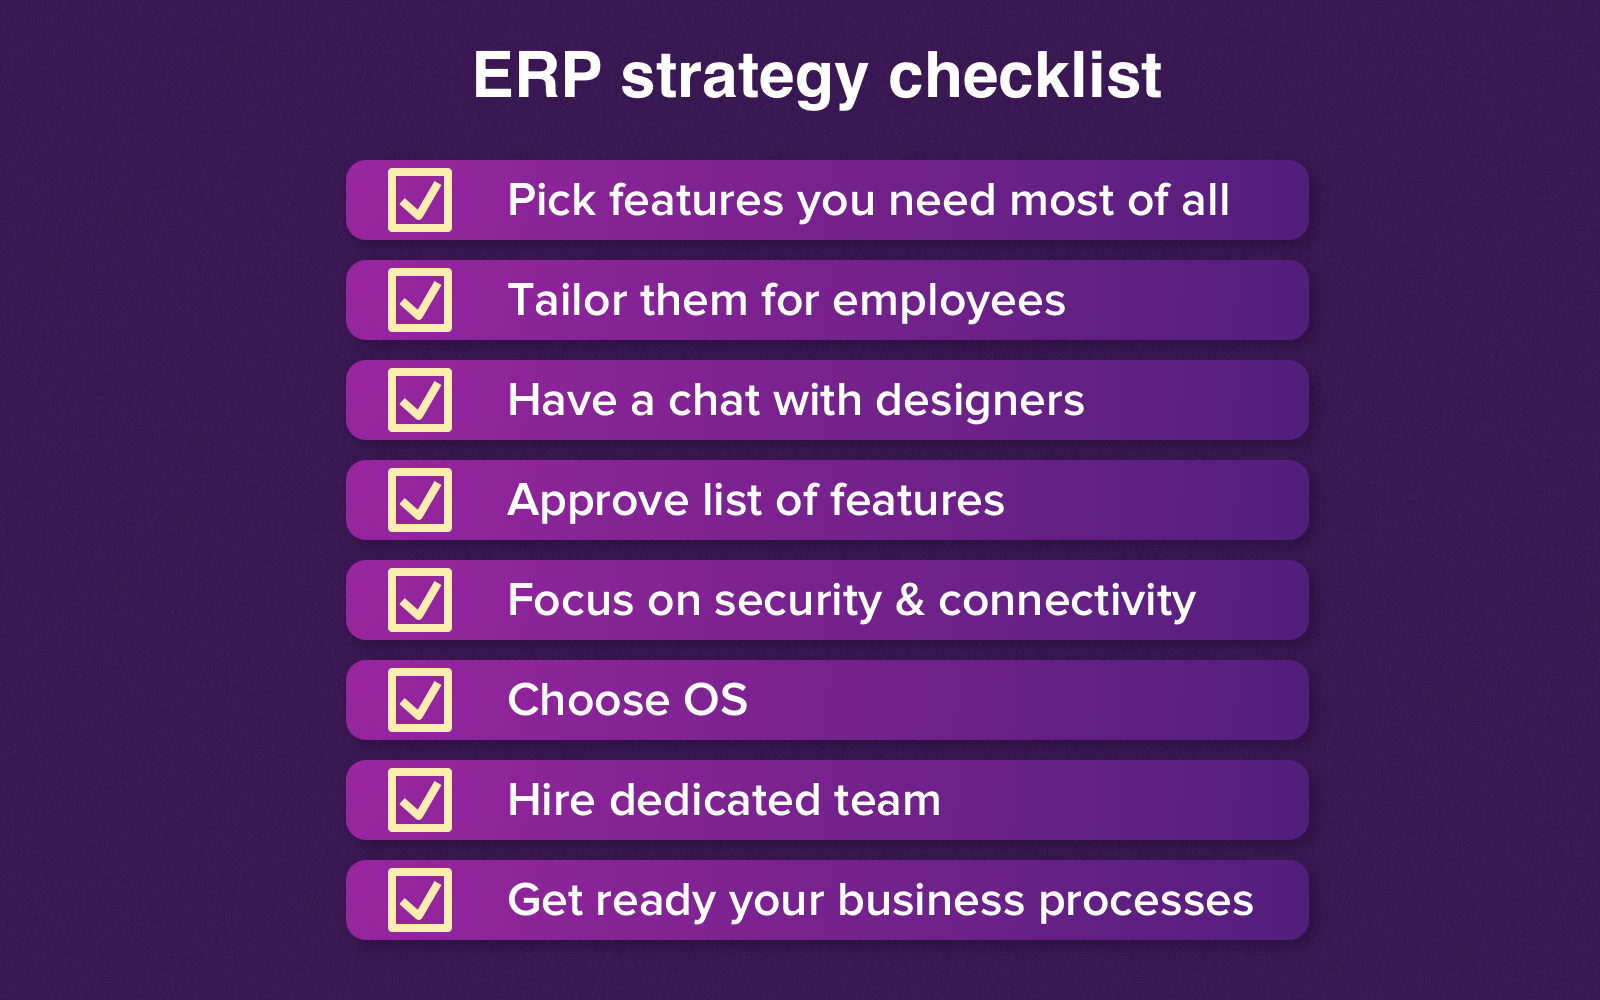 Ensure you've completed this checklist before the start of ERP mobile application development